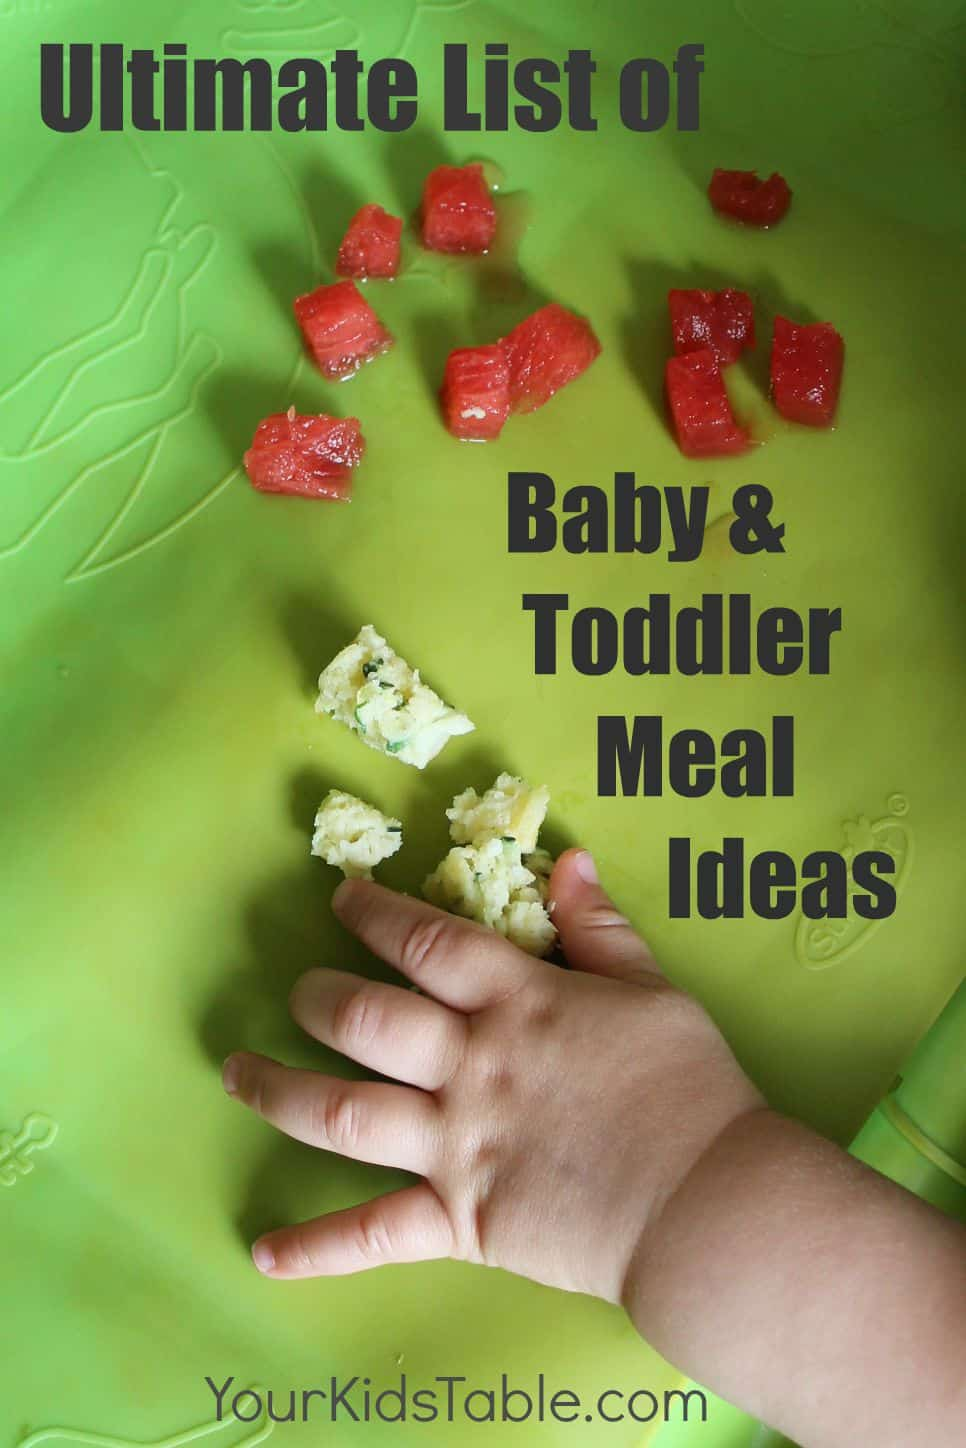 Whole Foods For Toddlers